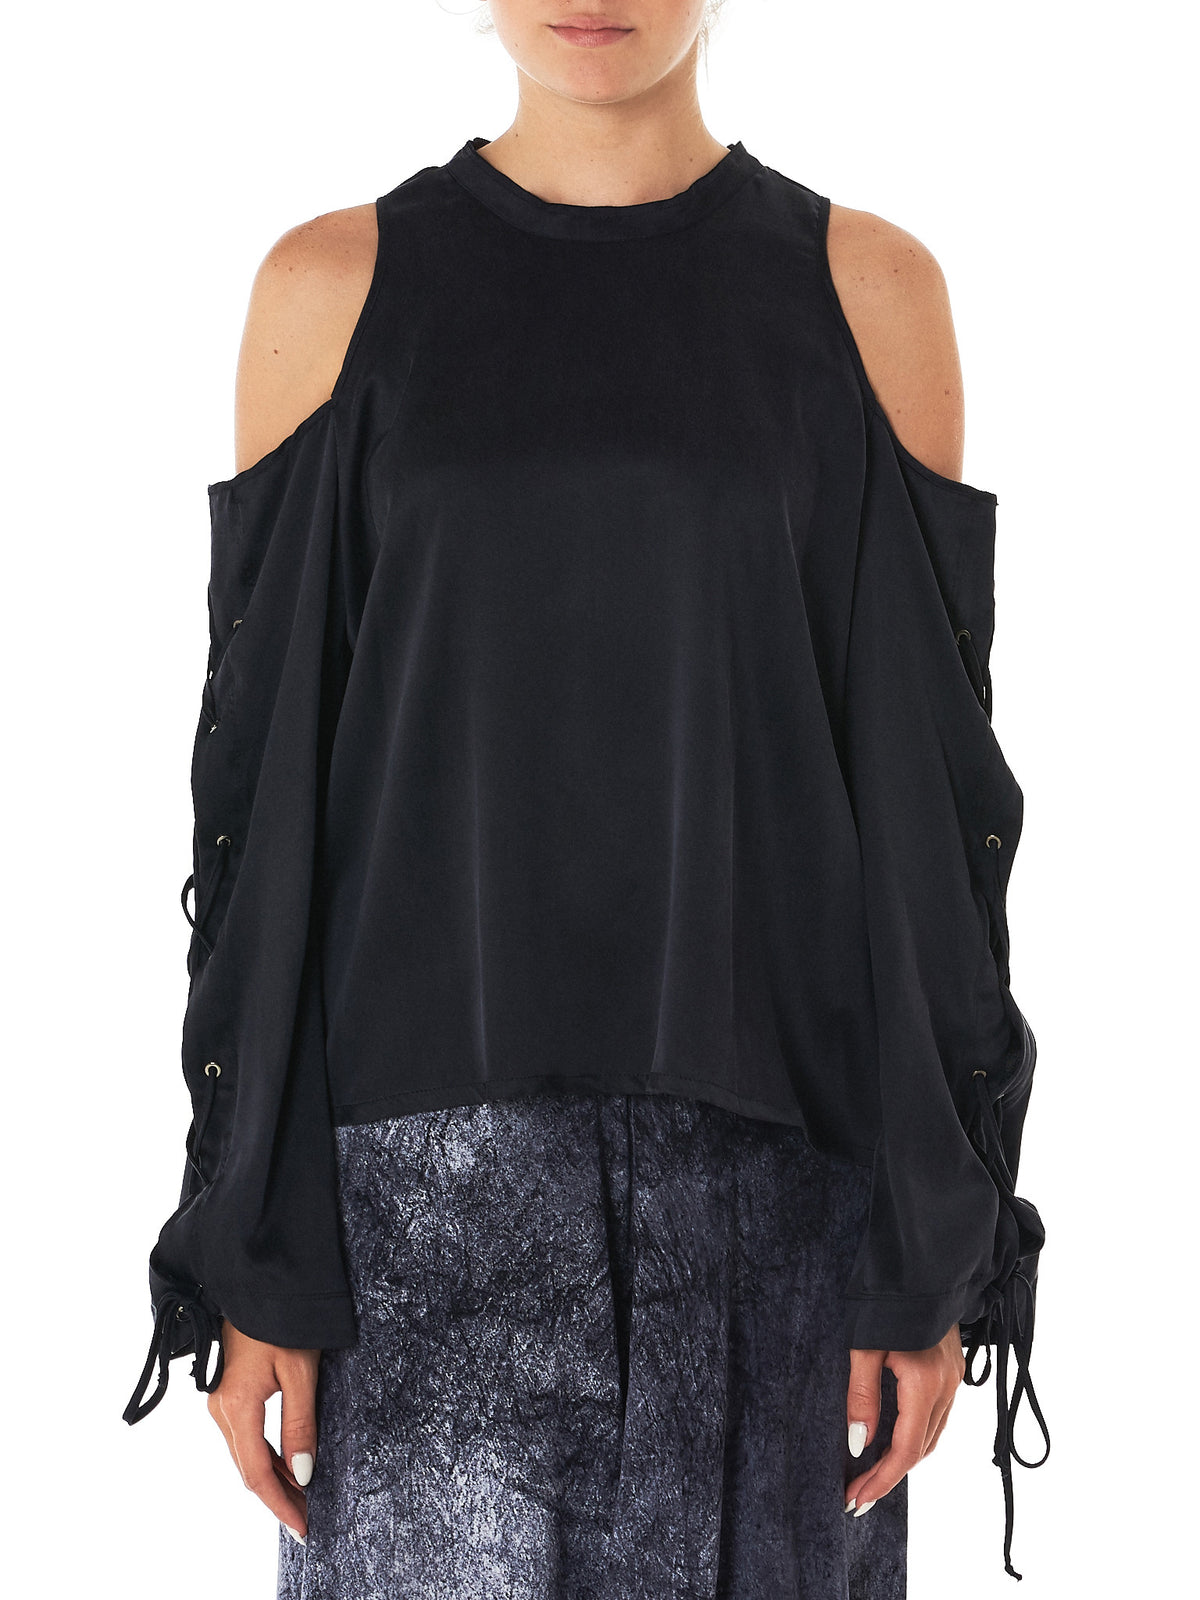 Lost & Found- HLorenzo- silk top front view